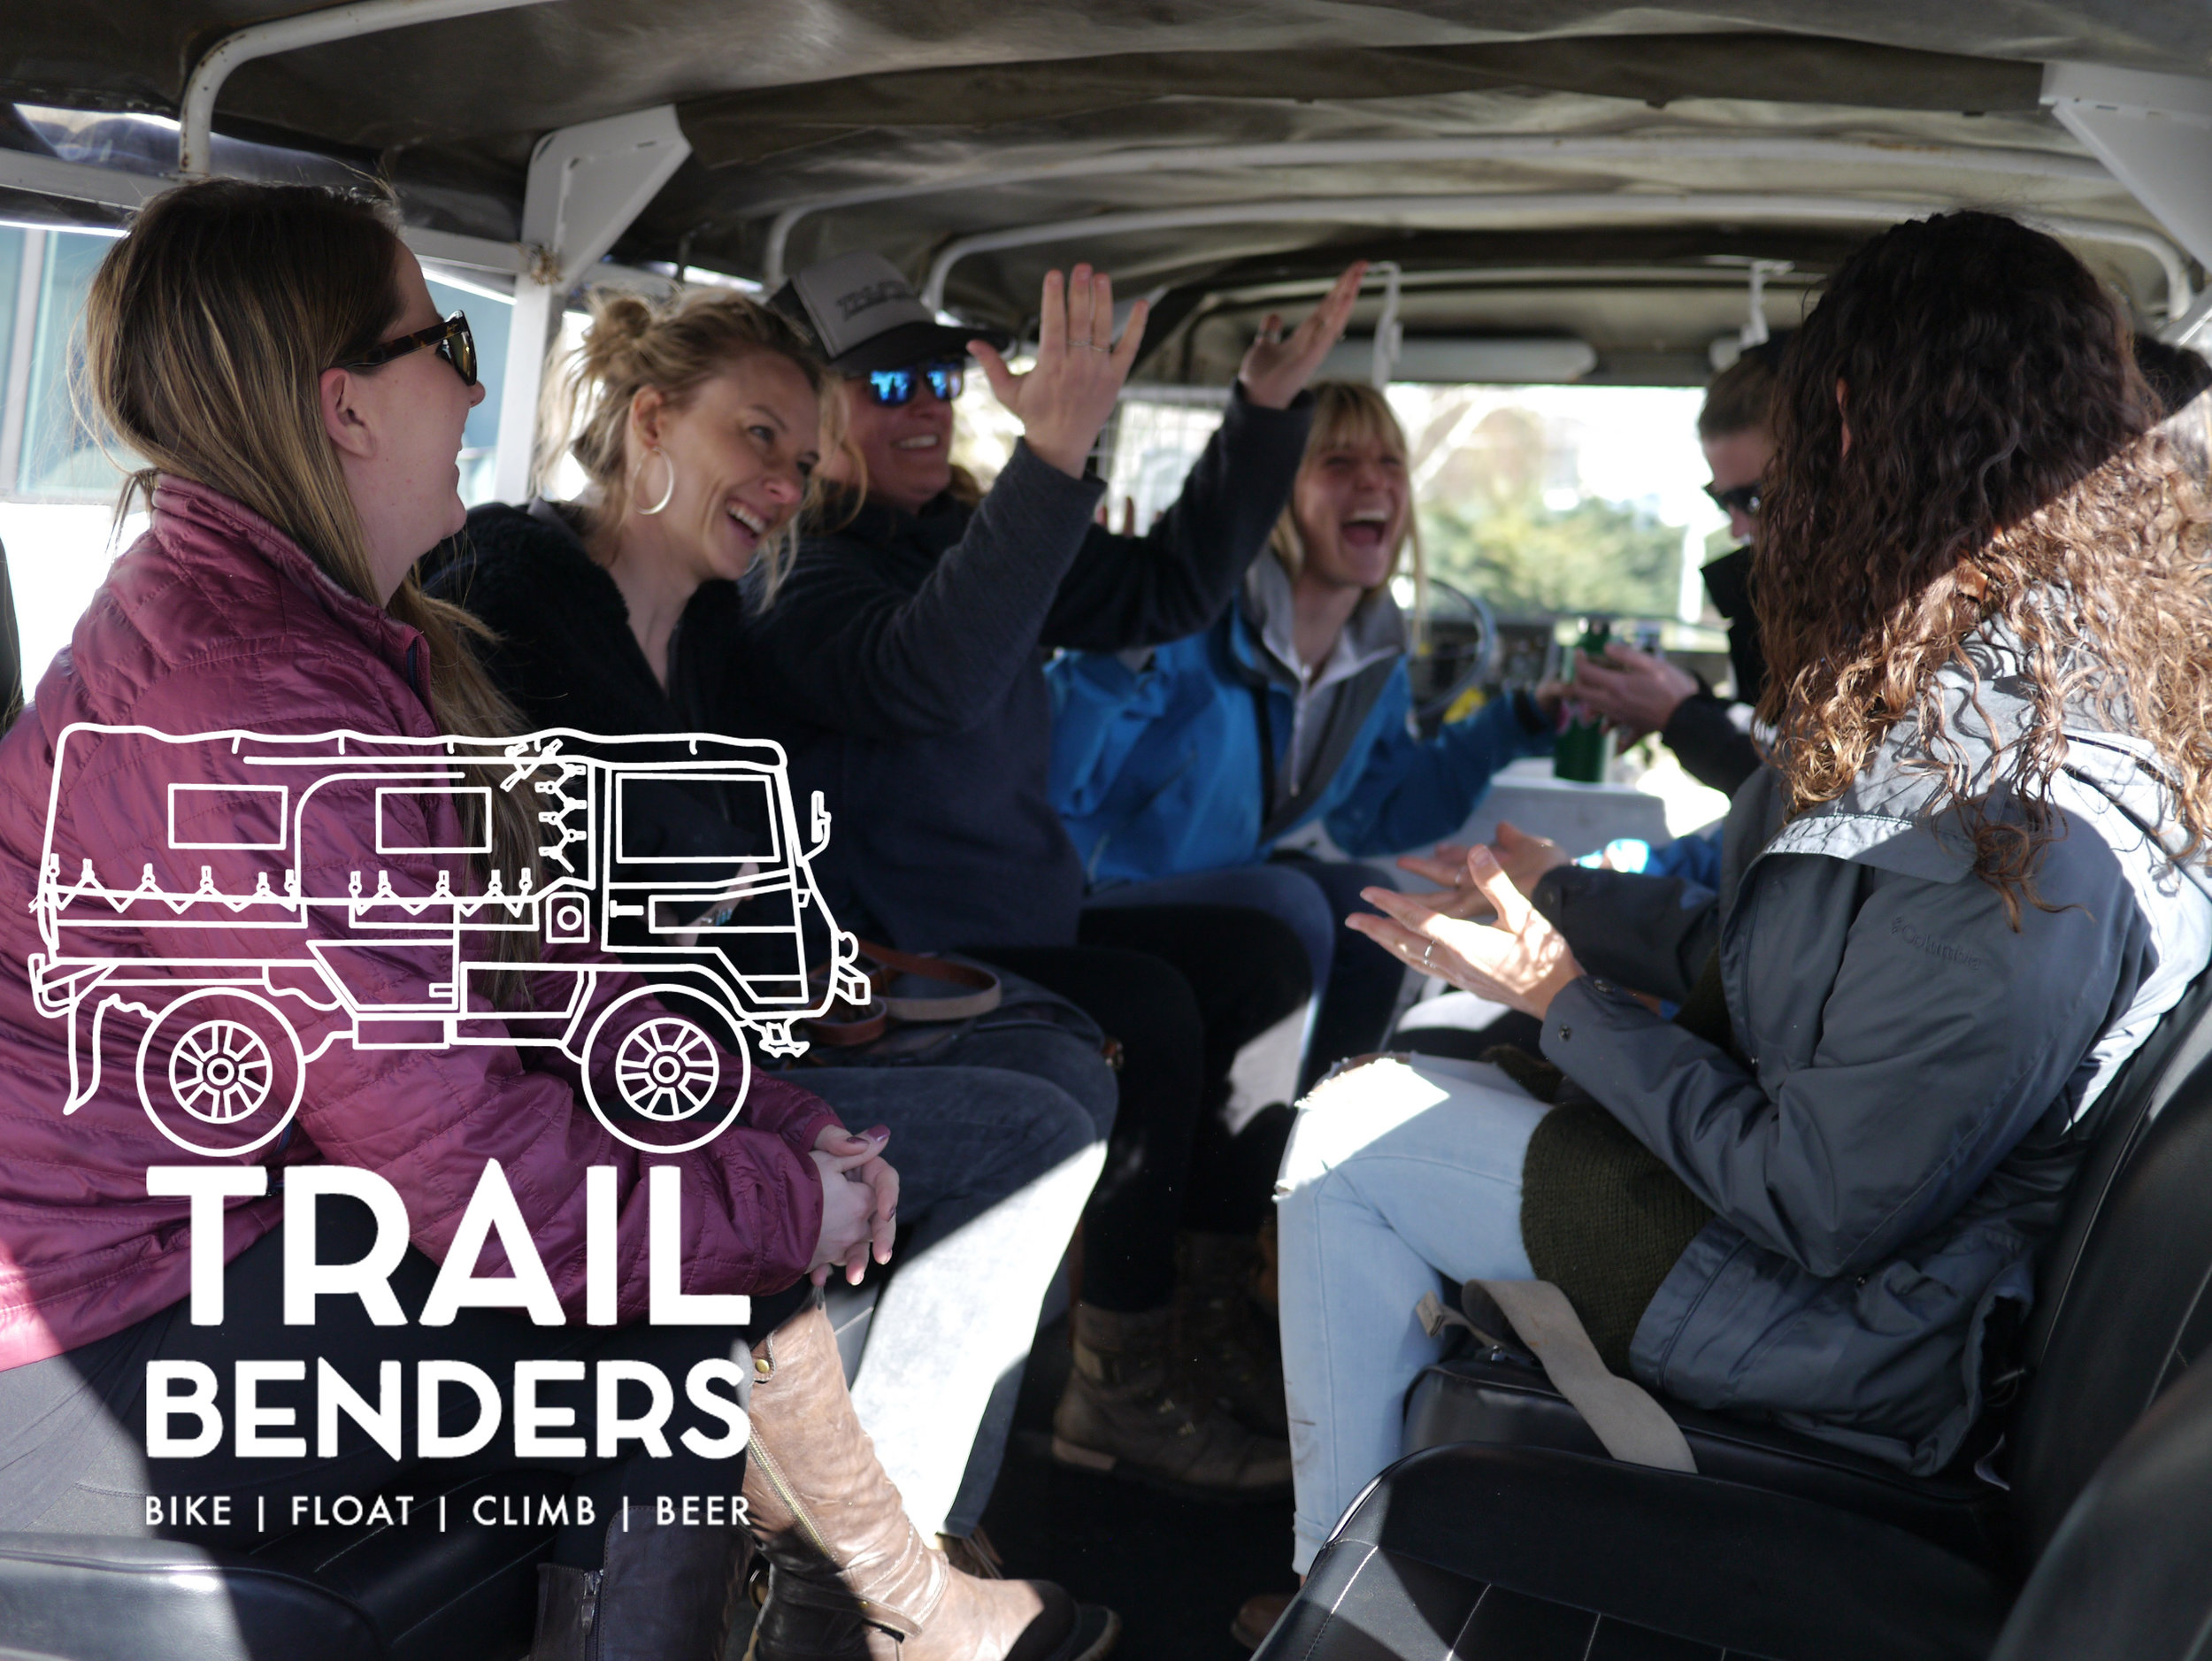 Backyard Bend - Bring a friend and join us on a float down the river and some of Bend's best beers! … Or if you would rather stay dry you can opt for the beer only adventure. Either way, leave the driving to us and hop in.Use the coupon code BACKYARD2019 to bring a friend along for 50% off.GET IN THE TANK!